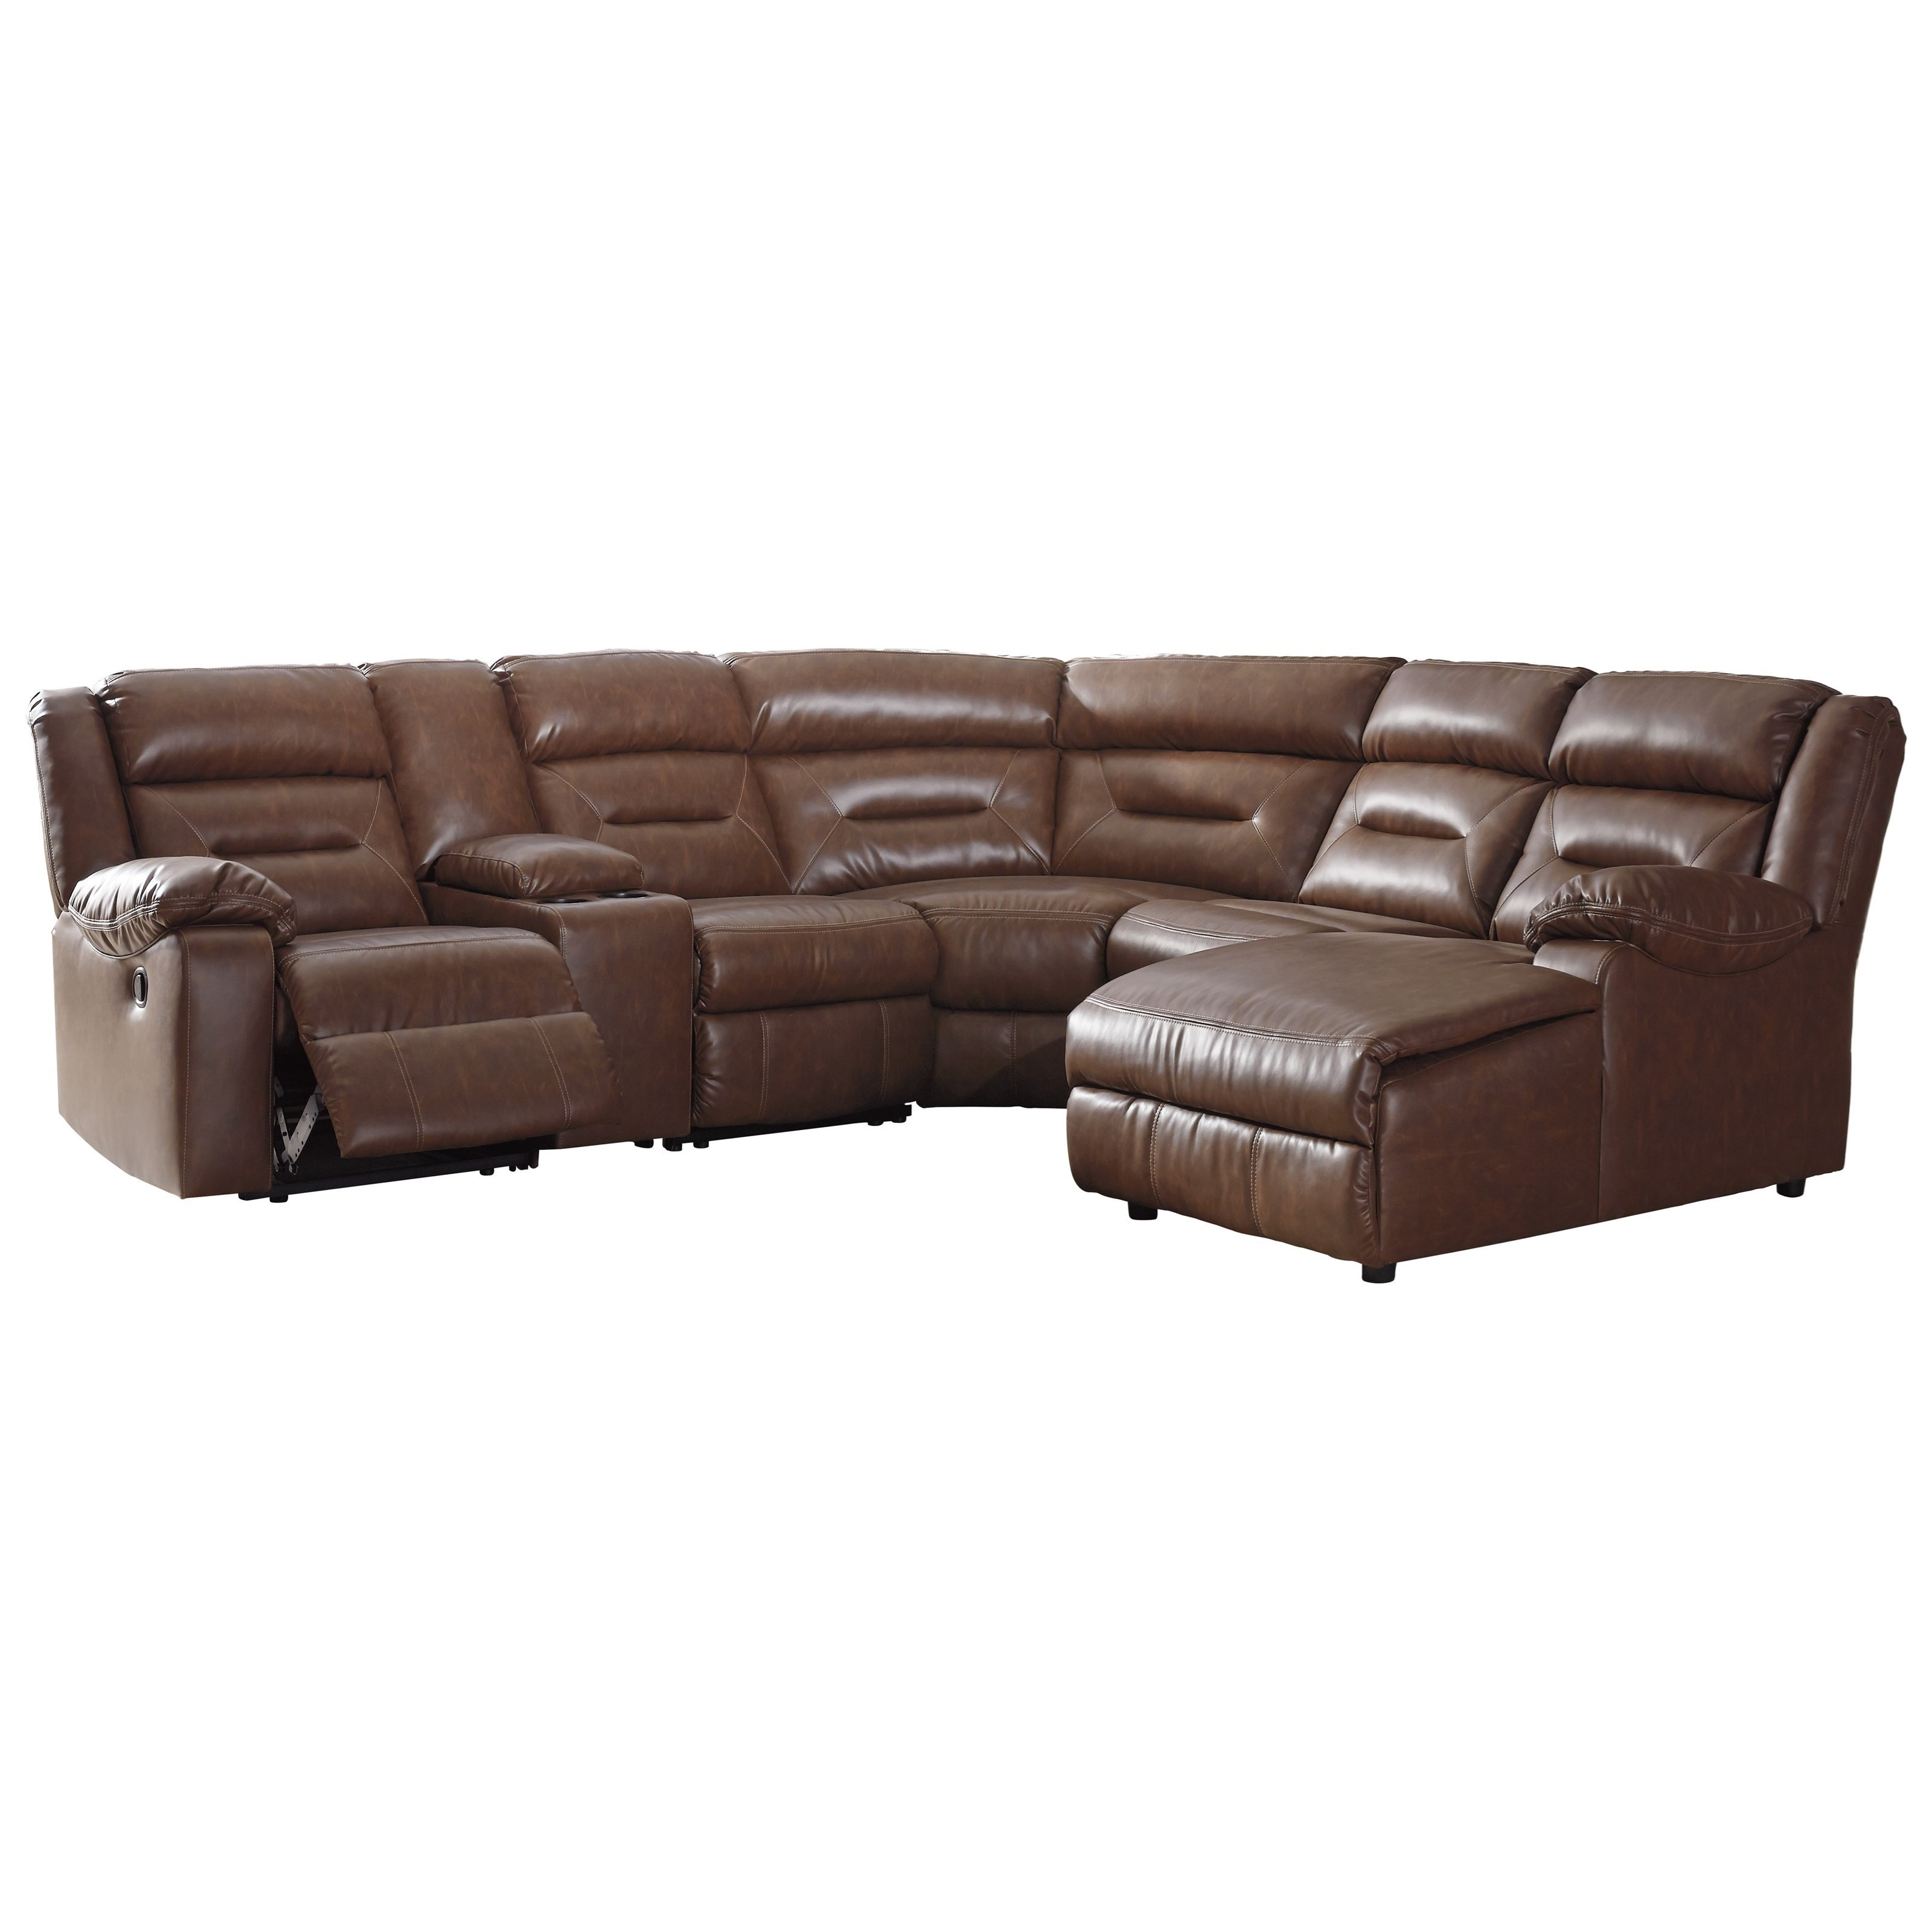 Coahoma 6-Piece Sectional with Chaise and Storage Console by Signature  Design by Ashley at Becker Furniture World